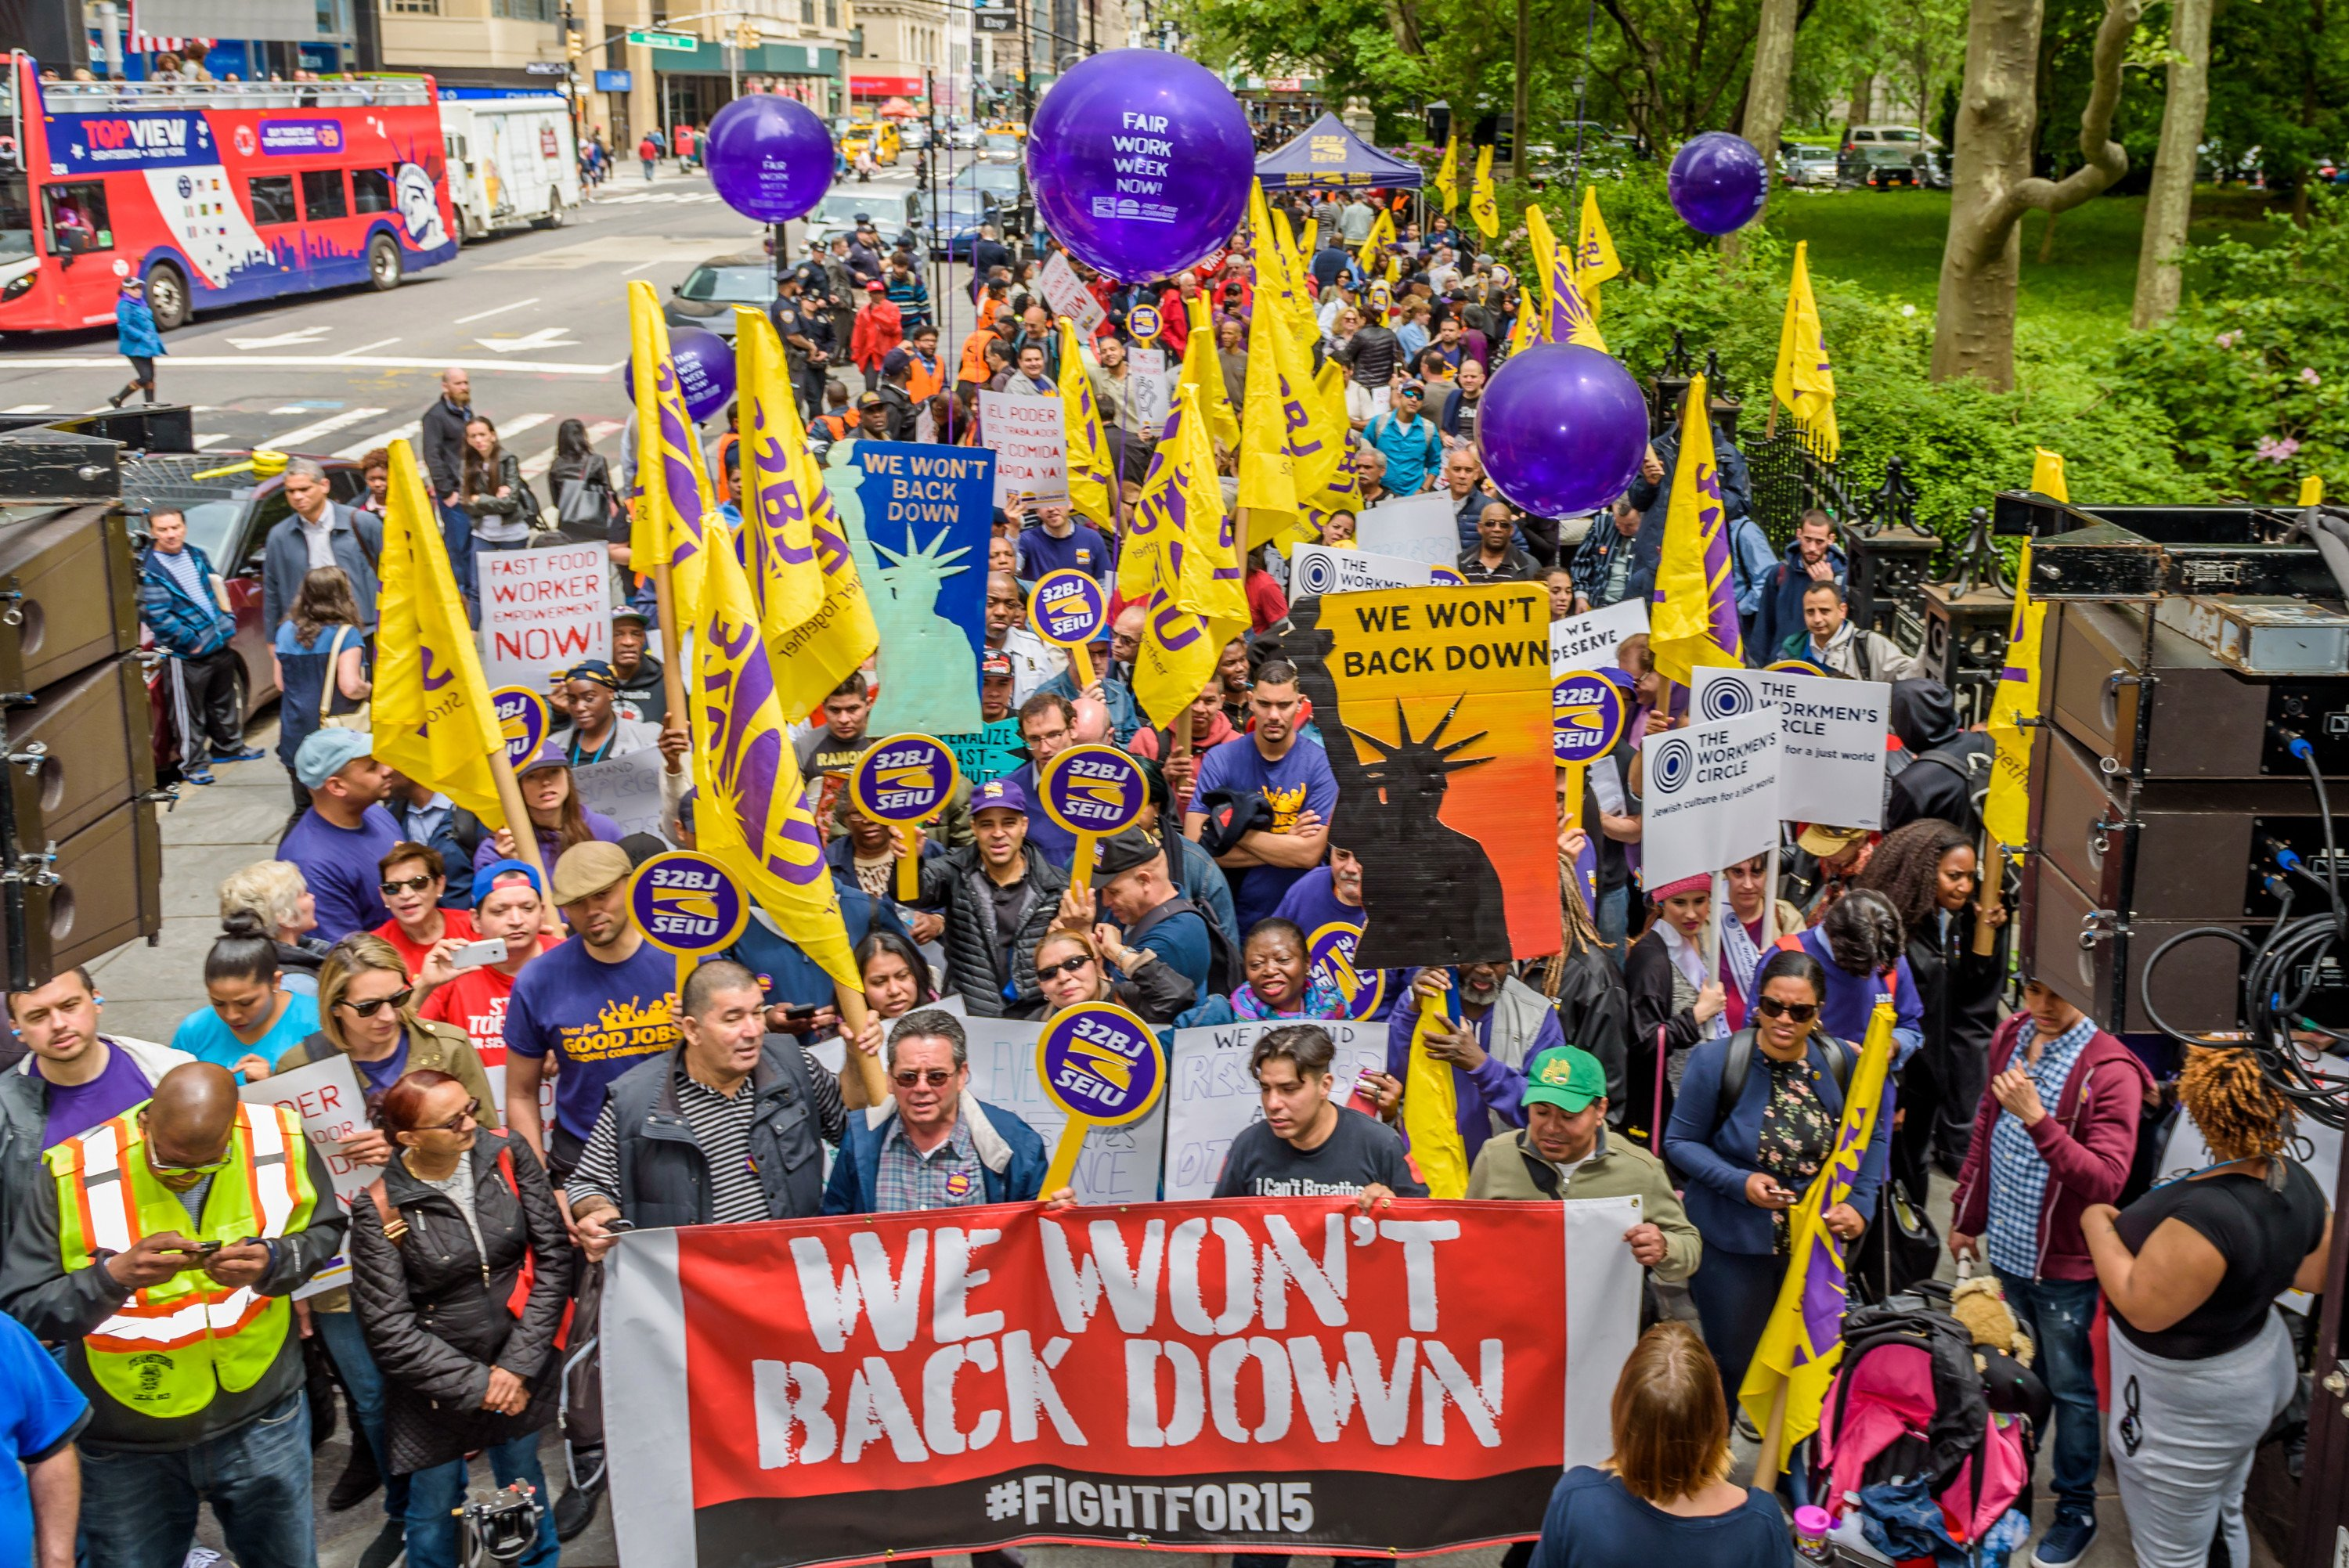 City allowed union to edit legislation for fast-food workers